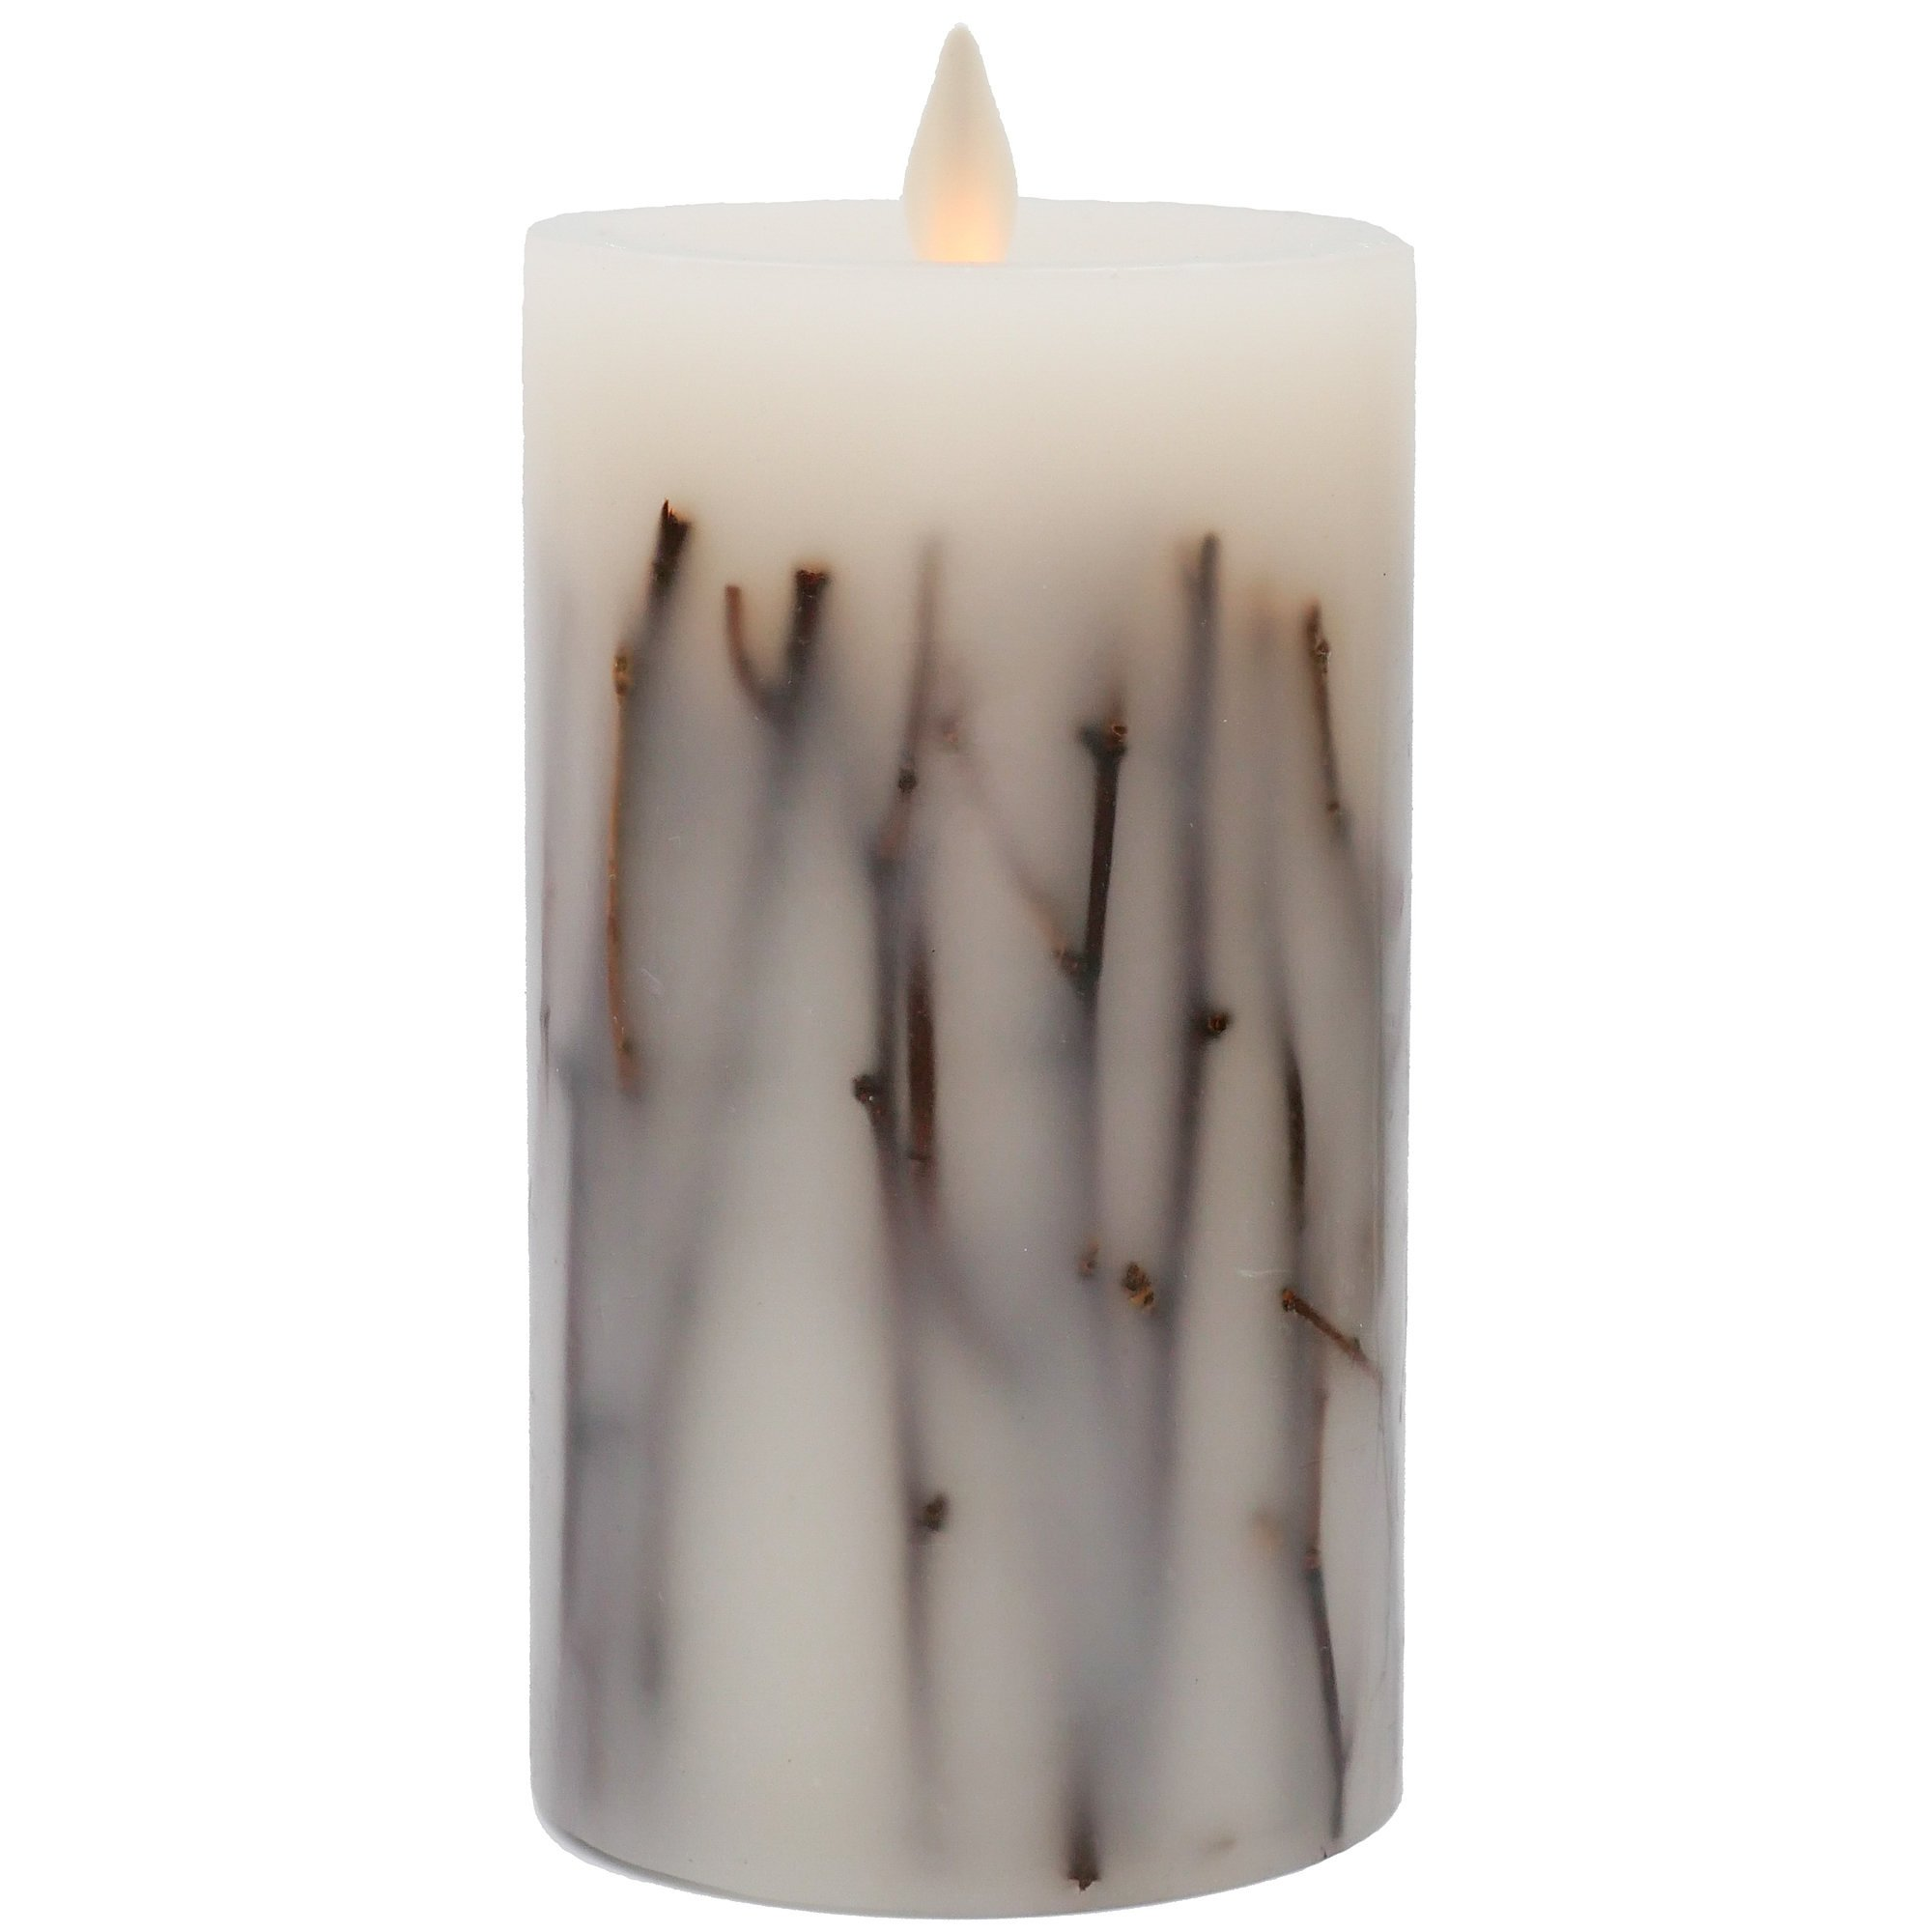 "Hooga Life Birch Sticks Flameless Candle – 7"" Tall x 5"" Diameter Real Wax Pillar, Battery Operated LED Flickering Wick, Timer - For Safe Indoor and Outdoor Use – Remote Control Ready"